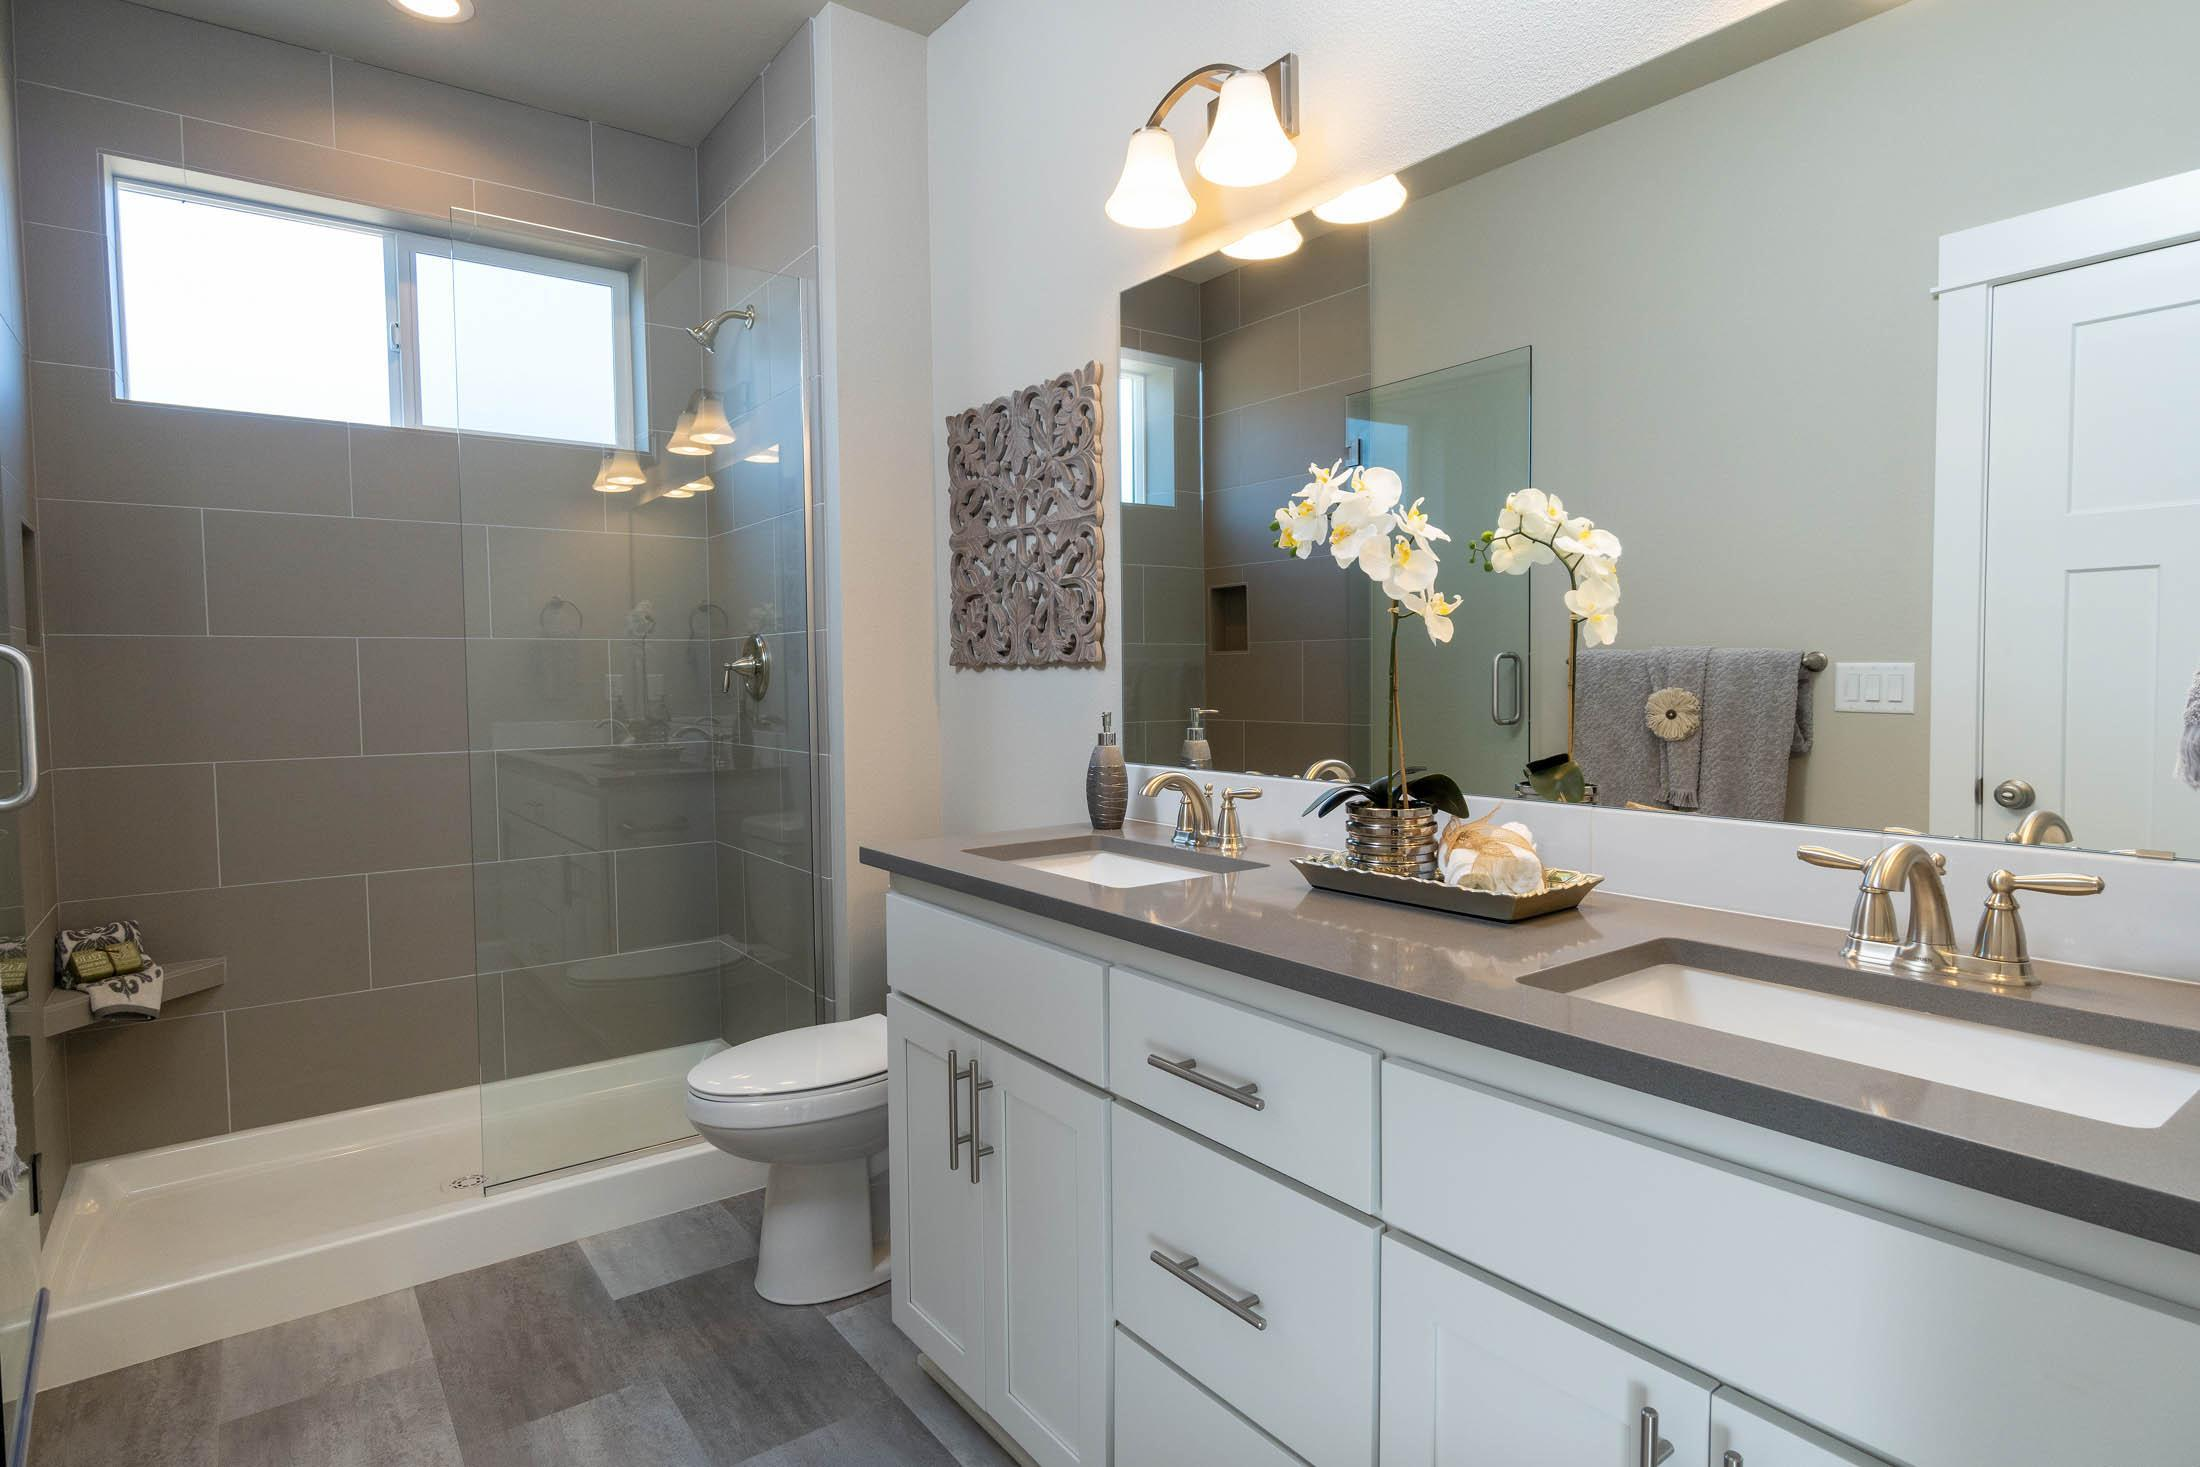 Bathroom featured in The Hemlock By Woodhill Homes in Central Oregon, OR